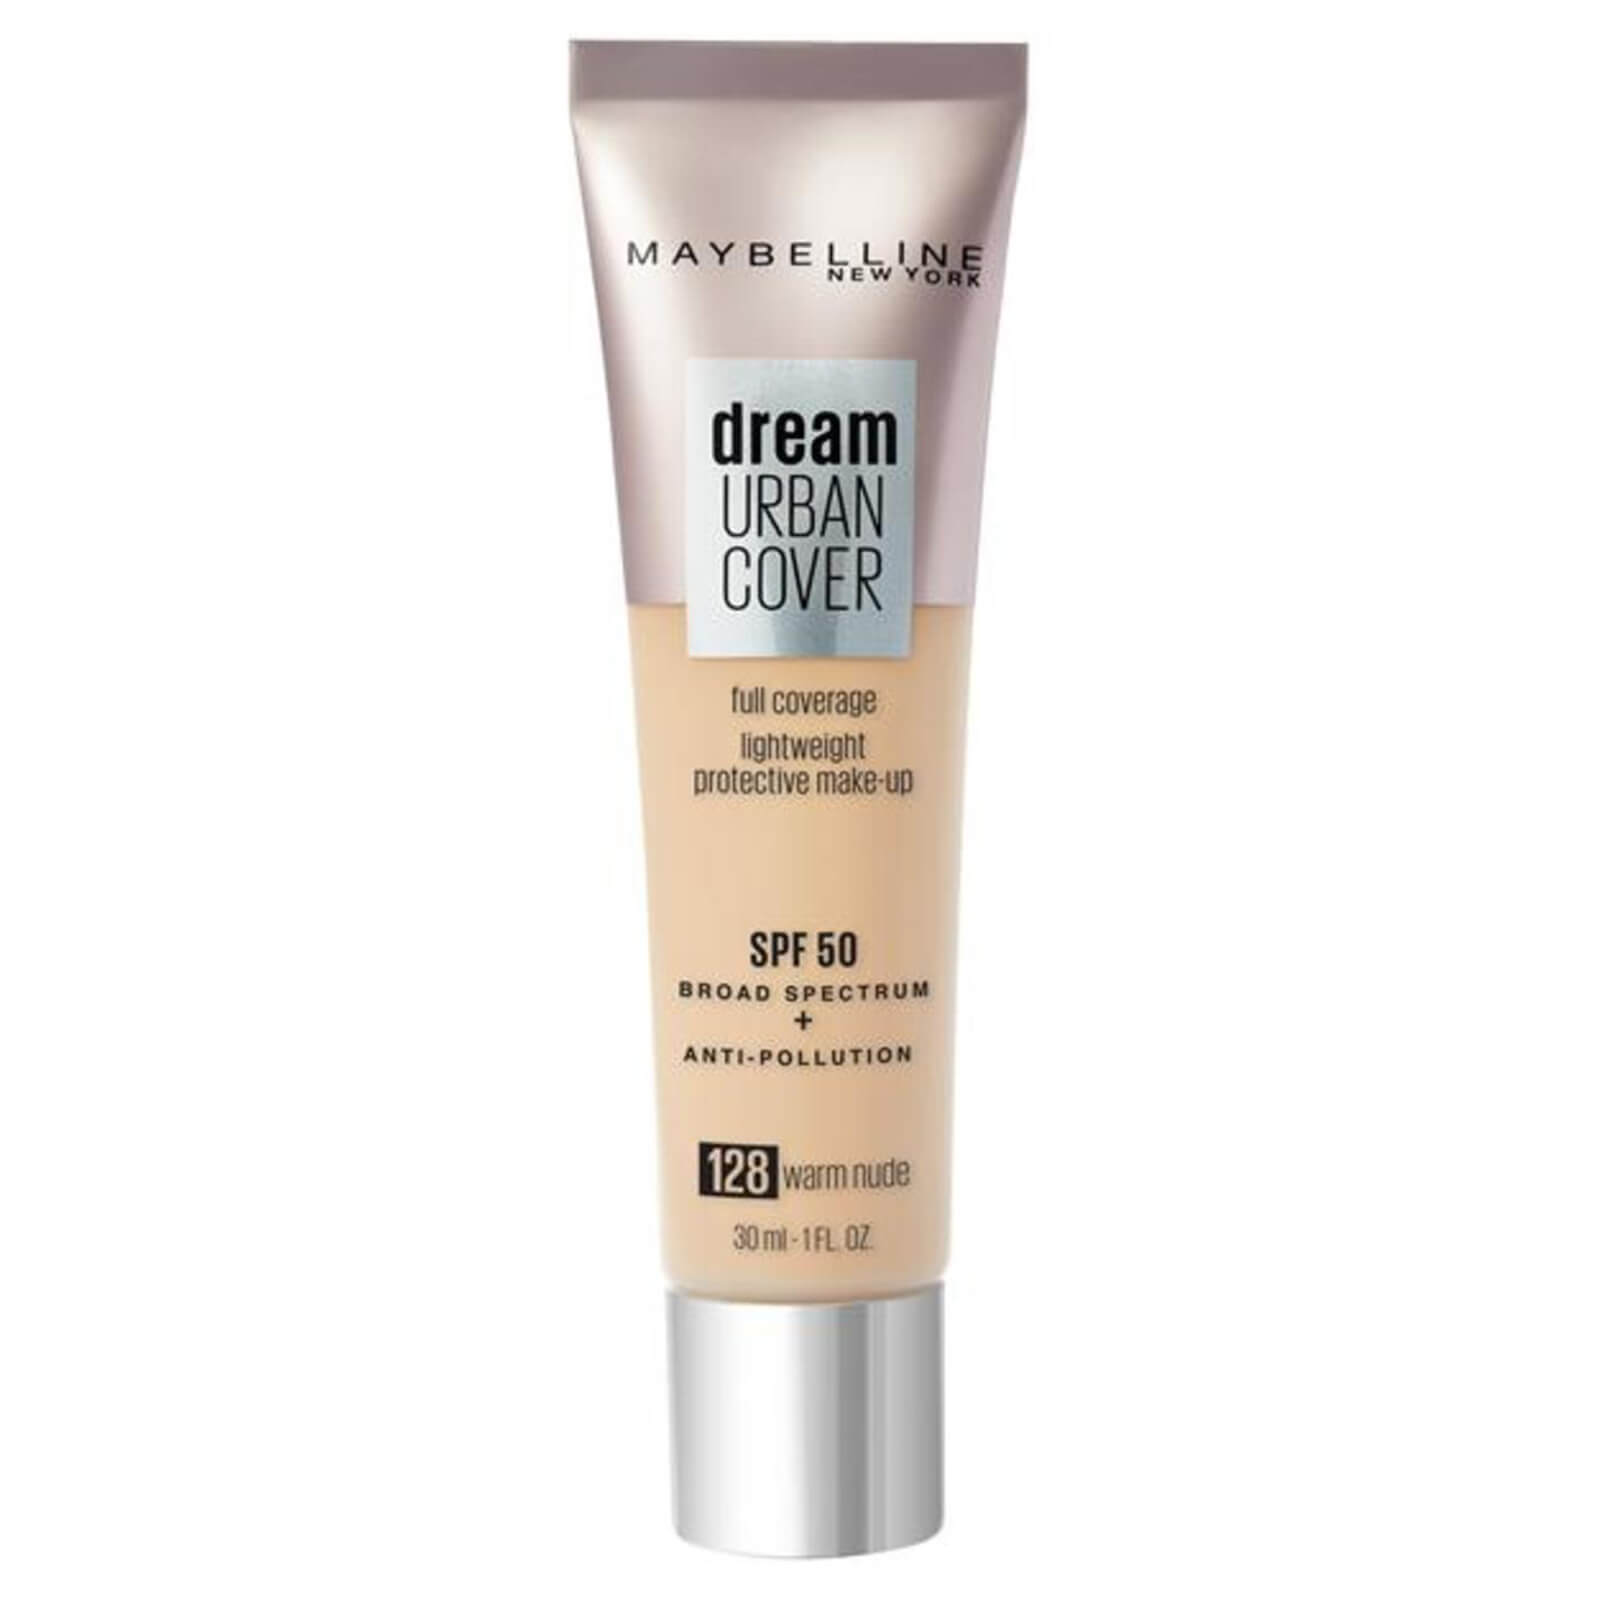 Maybelline Dream Urban Cover SPF50 Foundation 121ml (Various Shades) - 128 Warm Nude